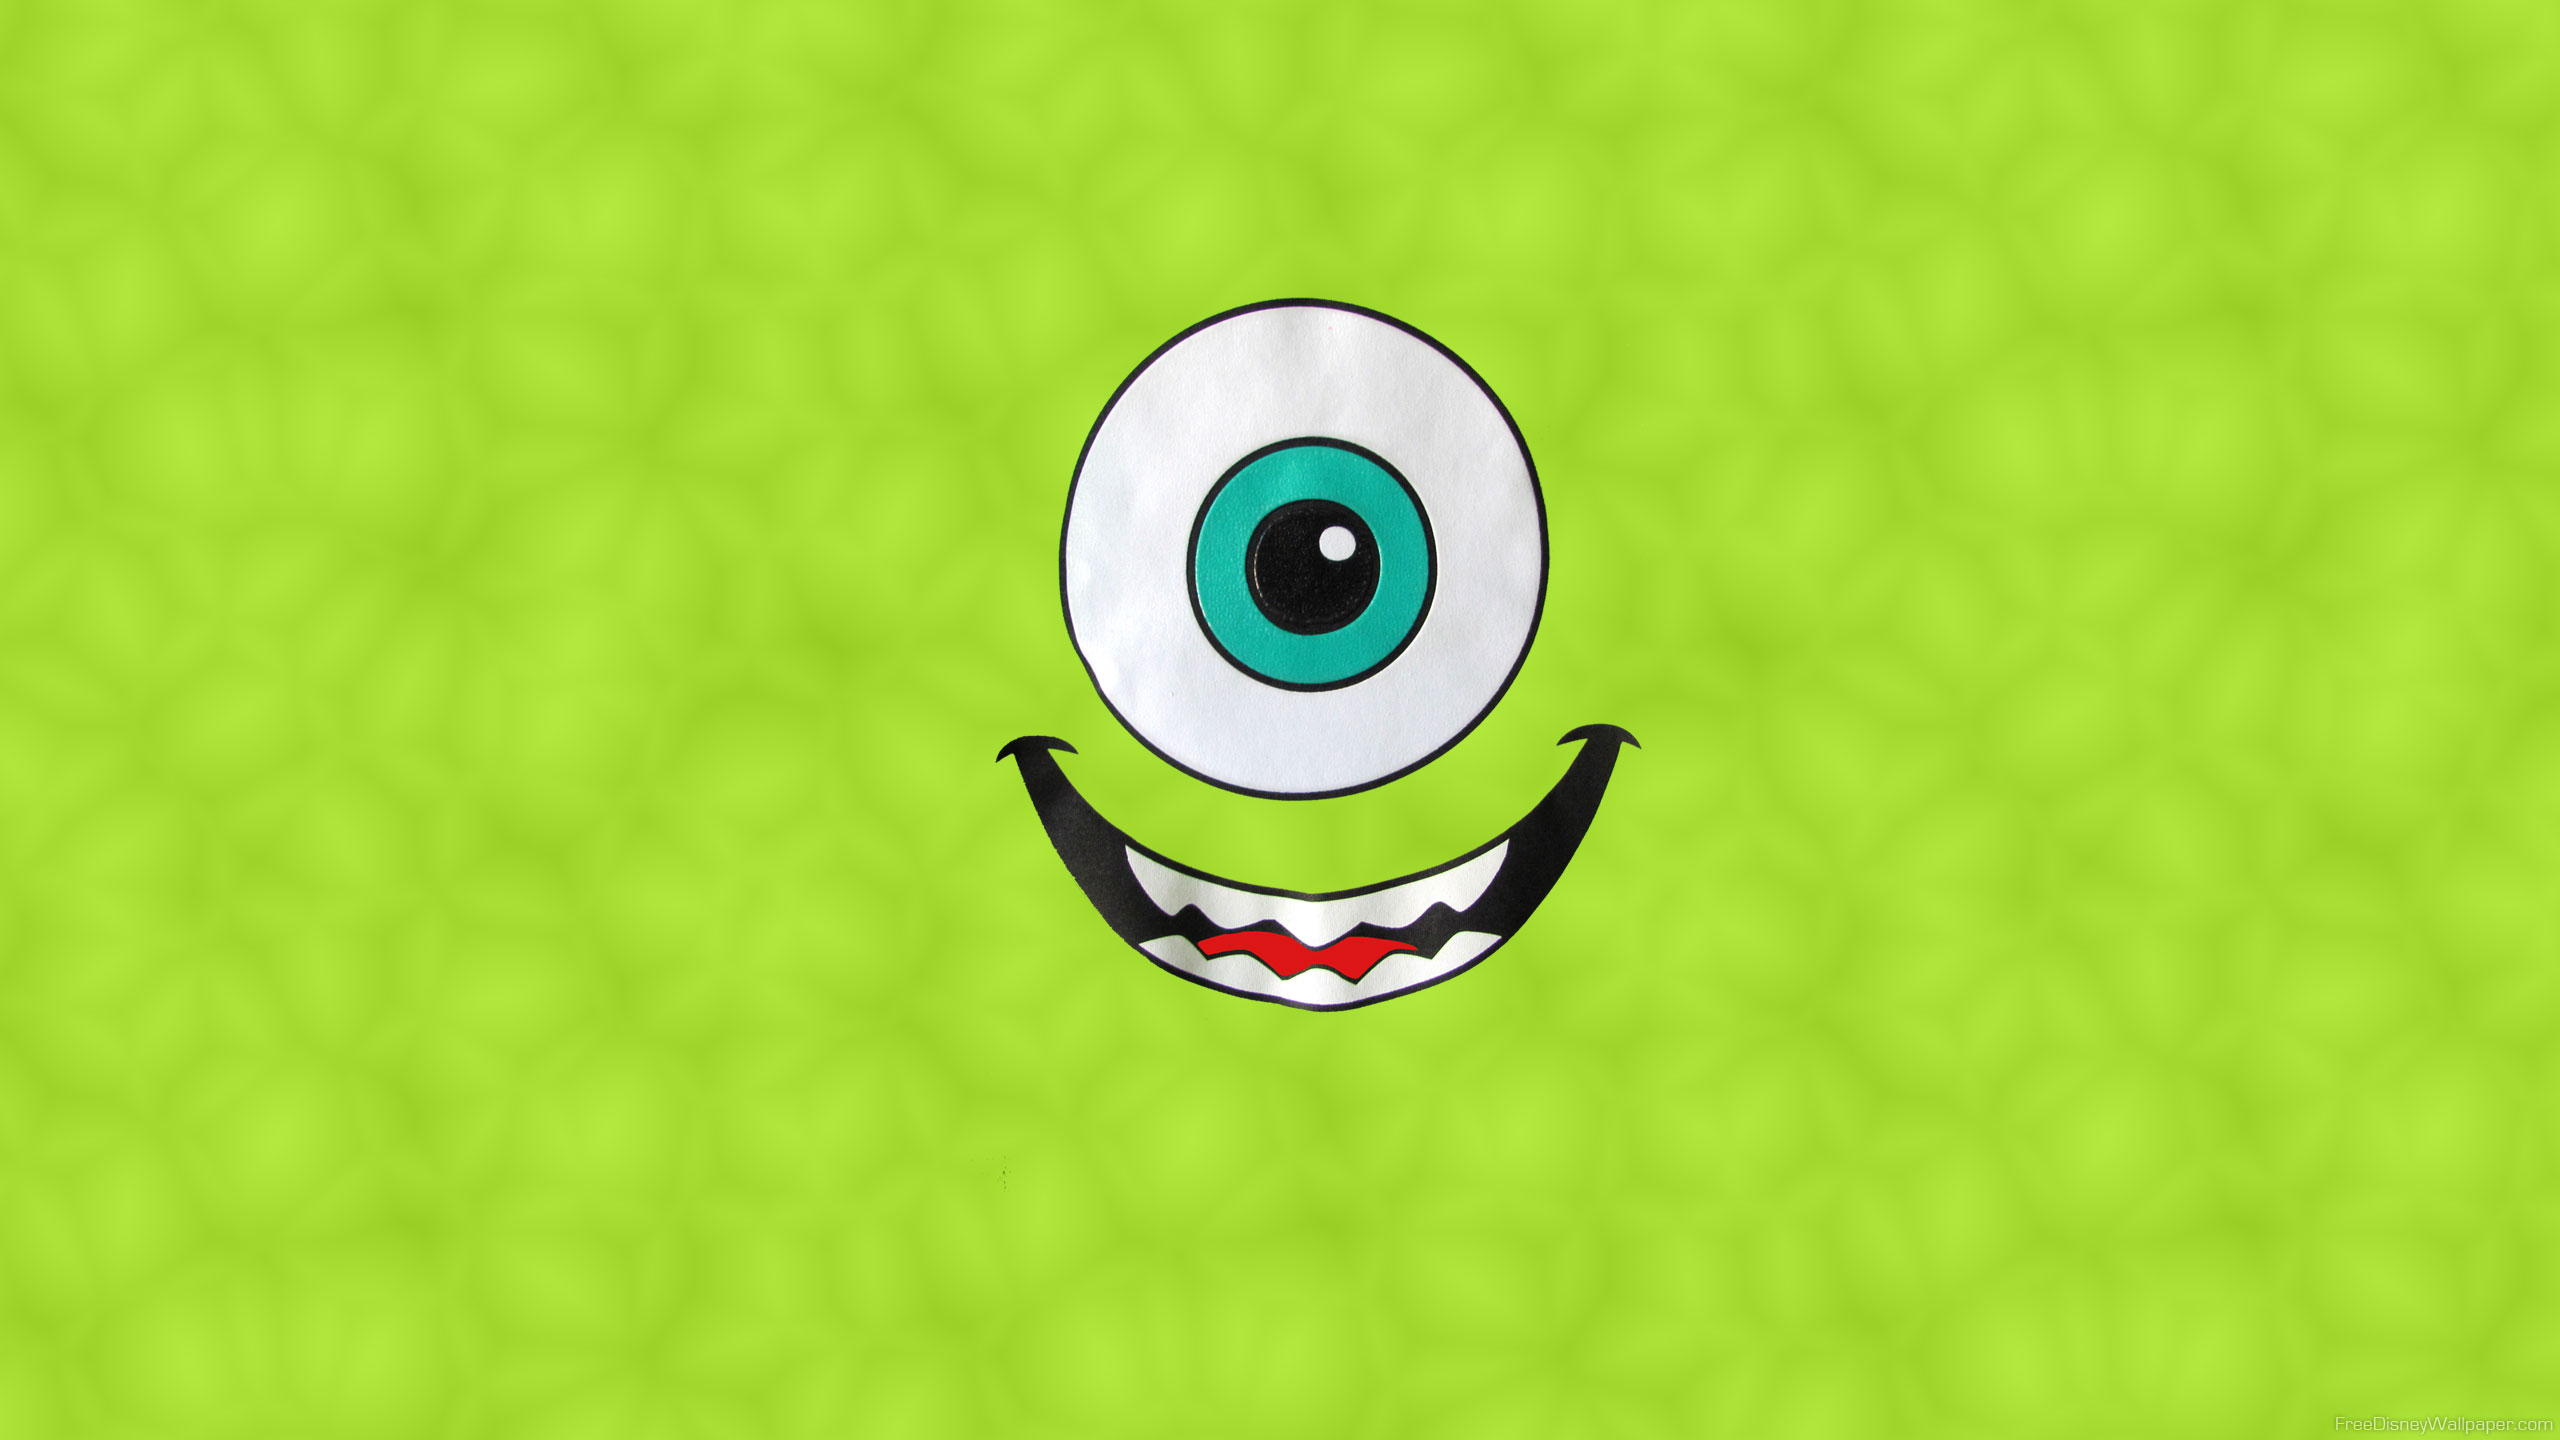 Wallpaper iphone monster university - Film Monsters University Mike Wazowski Bakgrund